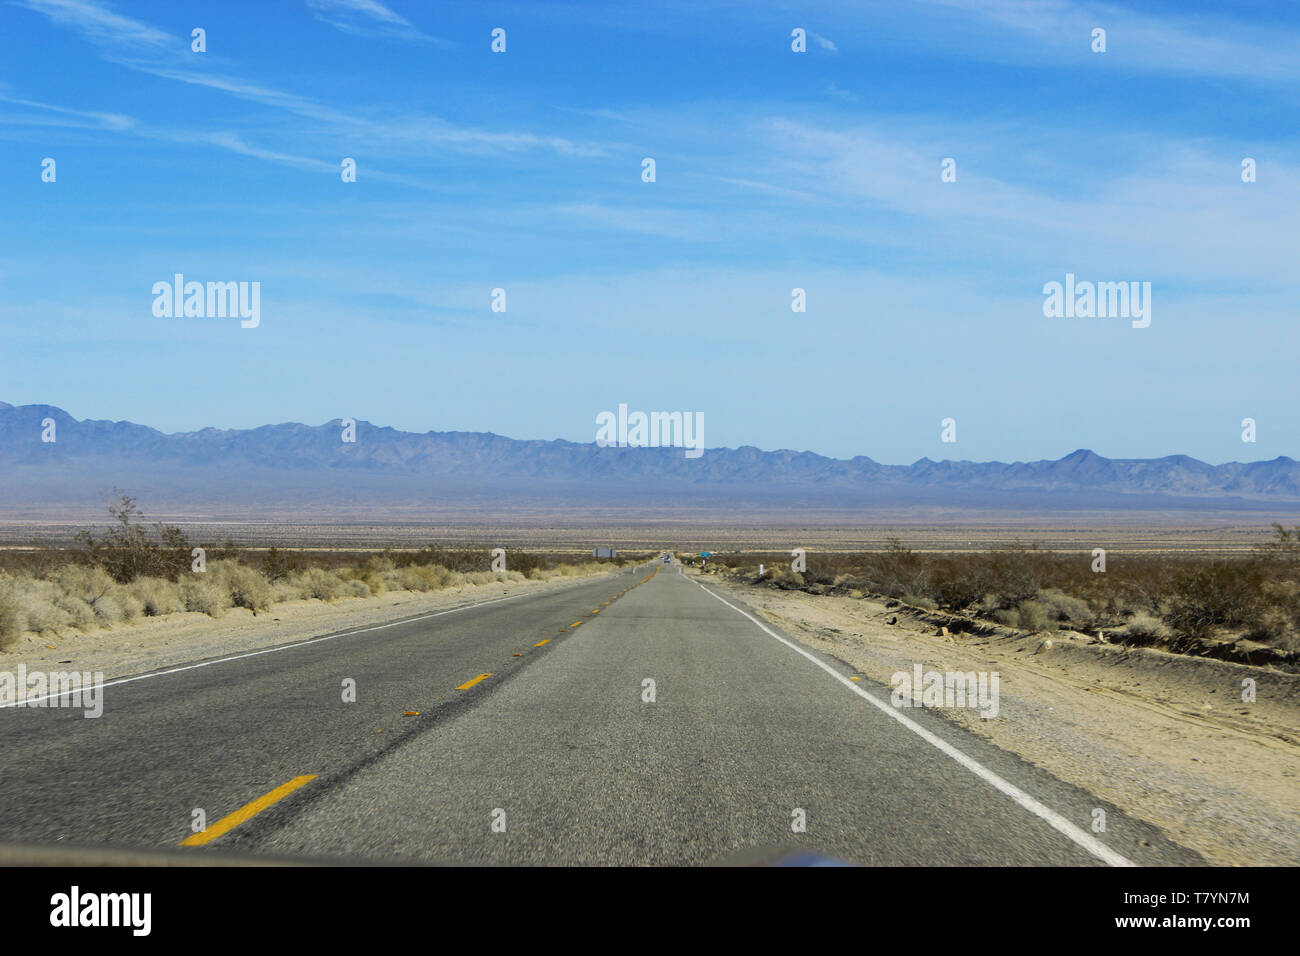 crossing valley on Highway 95 during a roadtrip - Stock Image